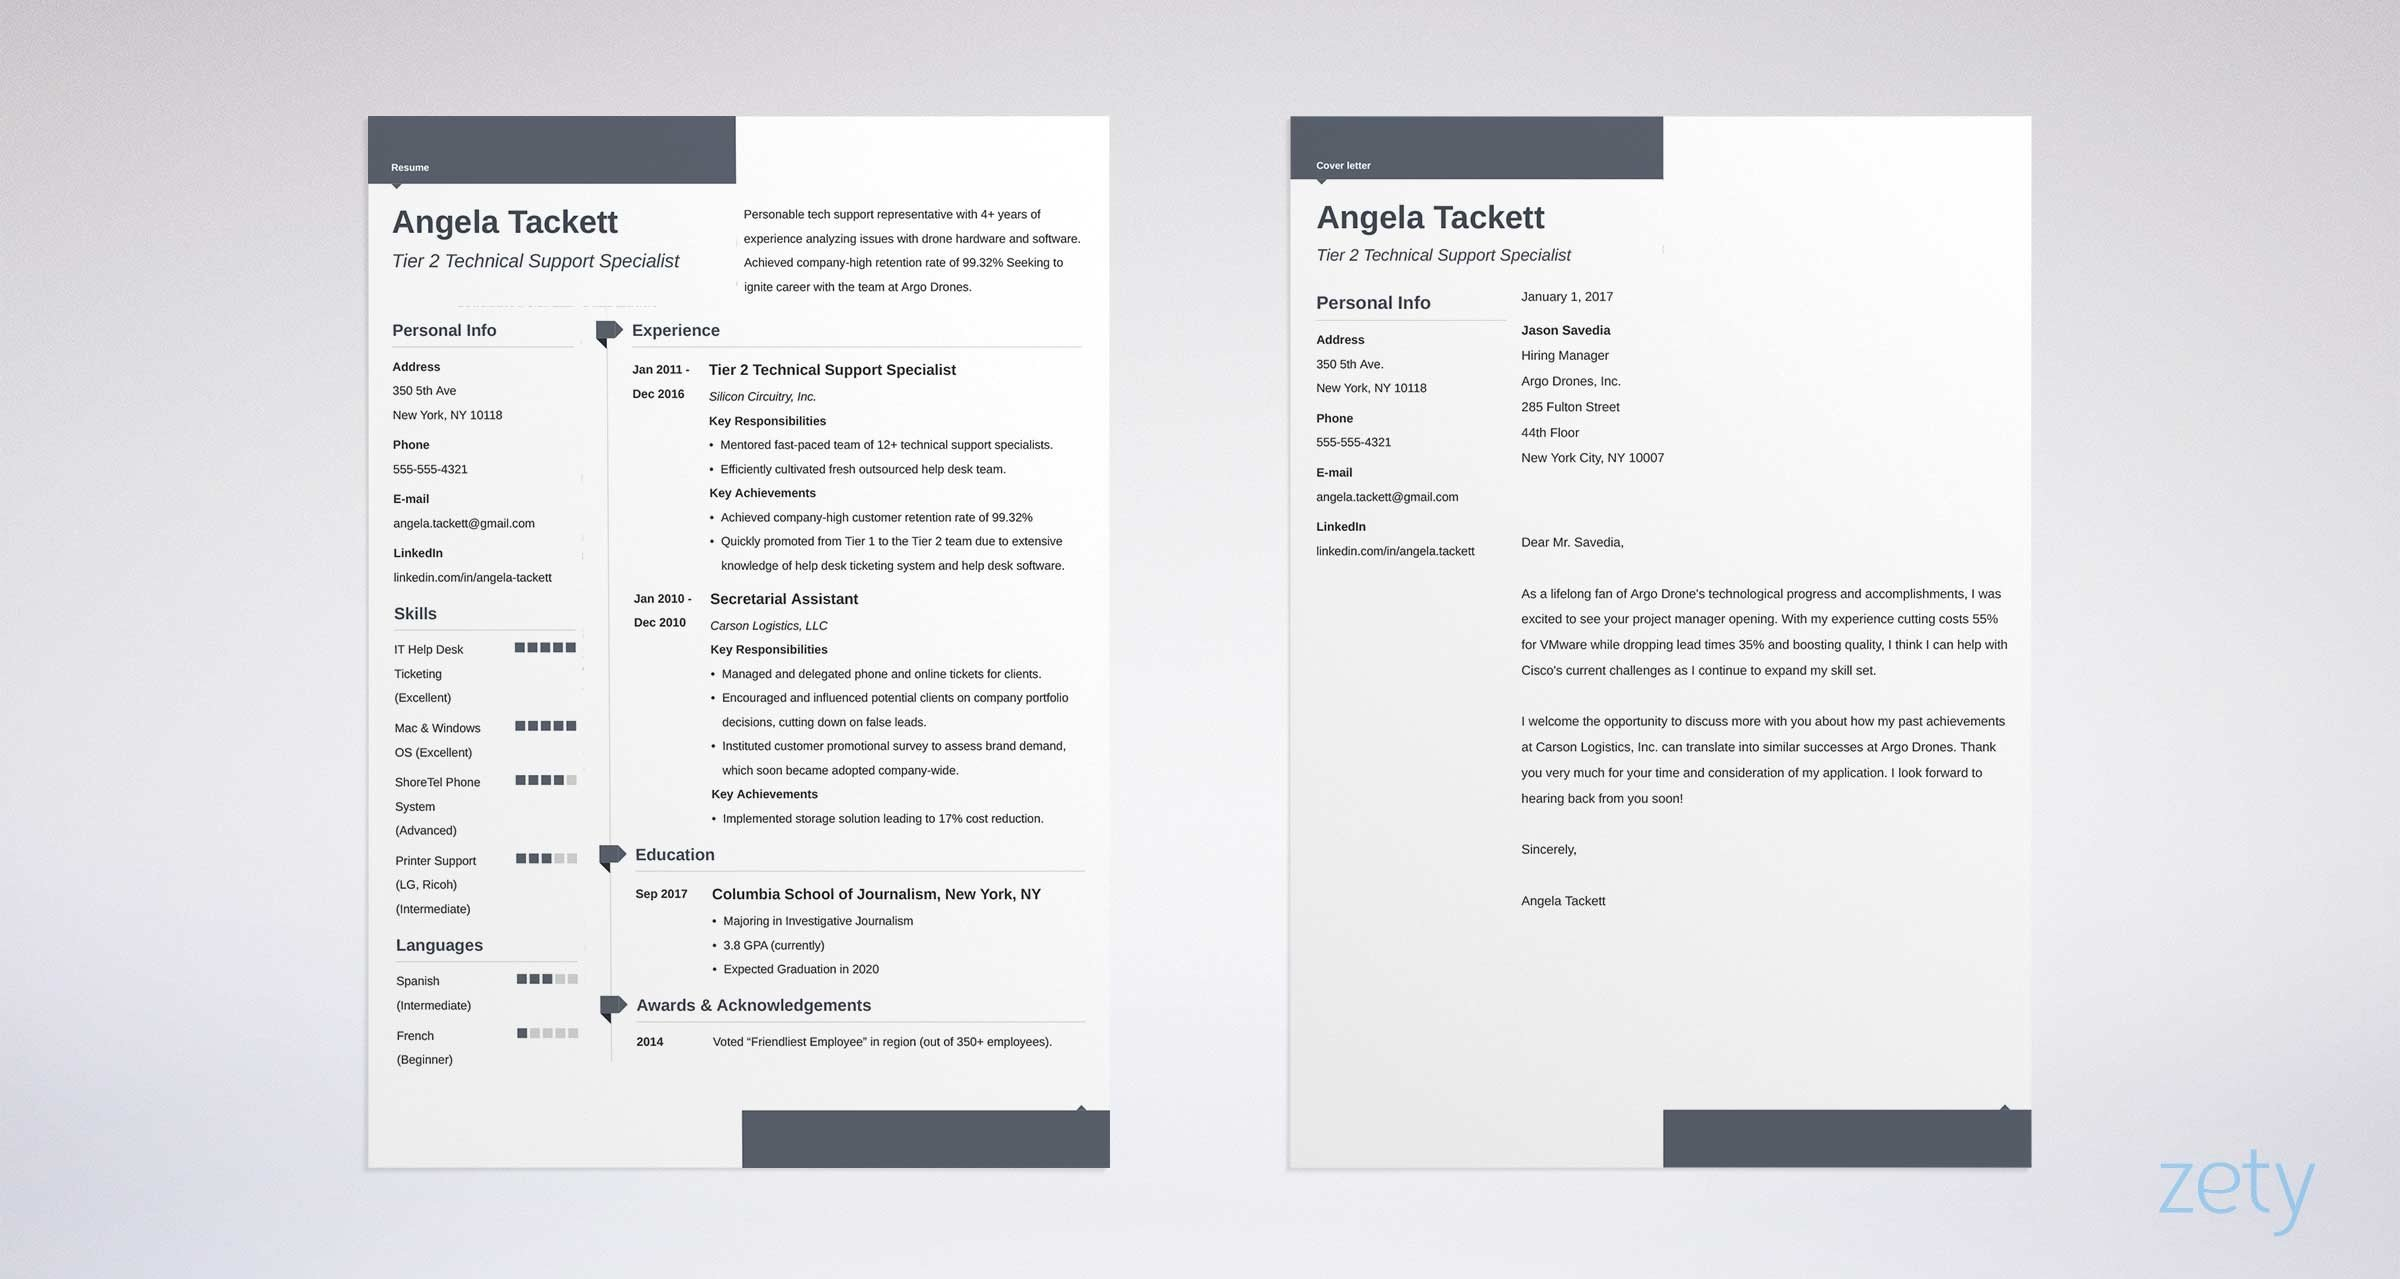 career change resume example guide with samples tips free and job description match Resume Free Resume And Job Description Match